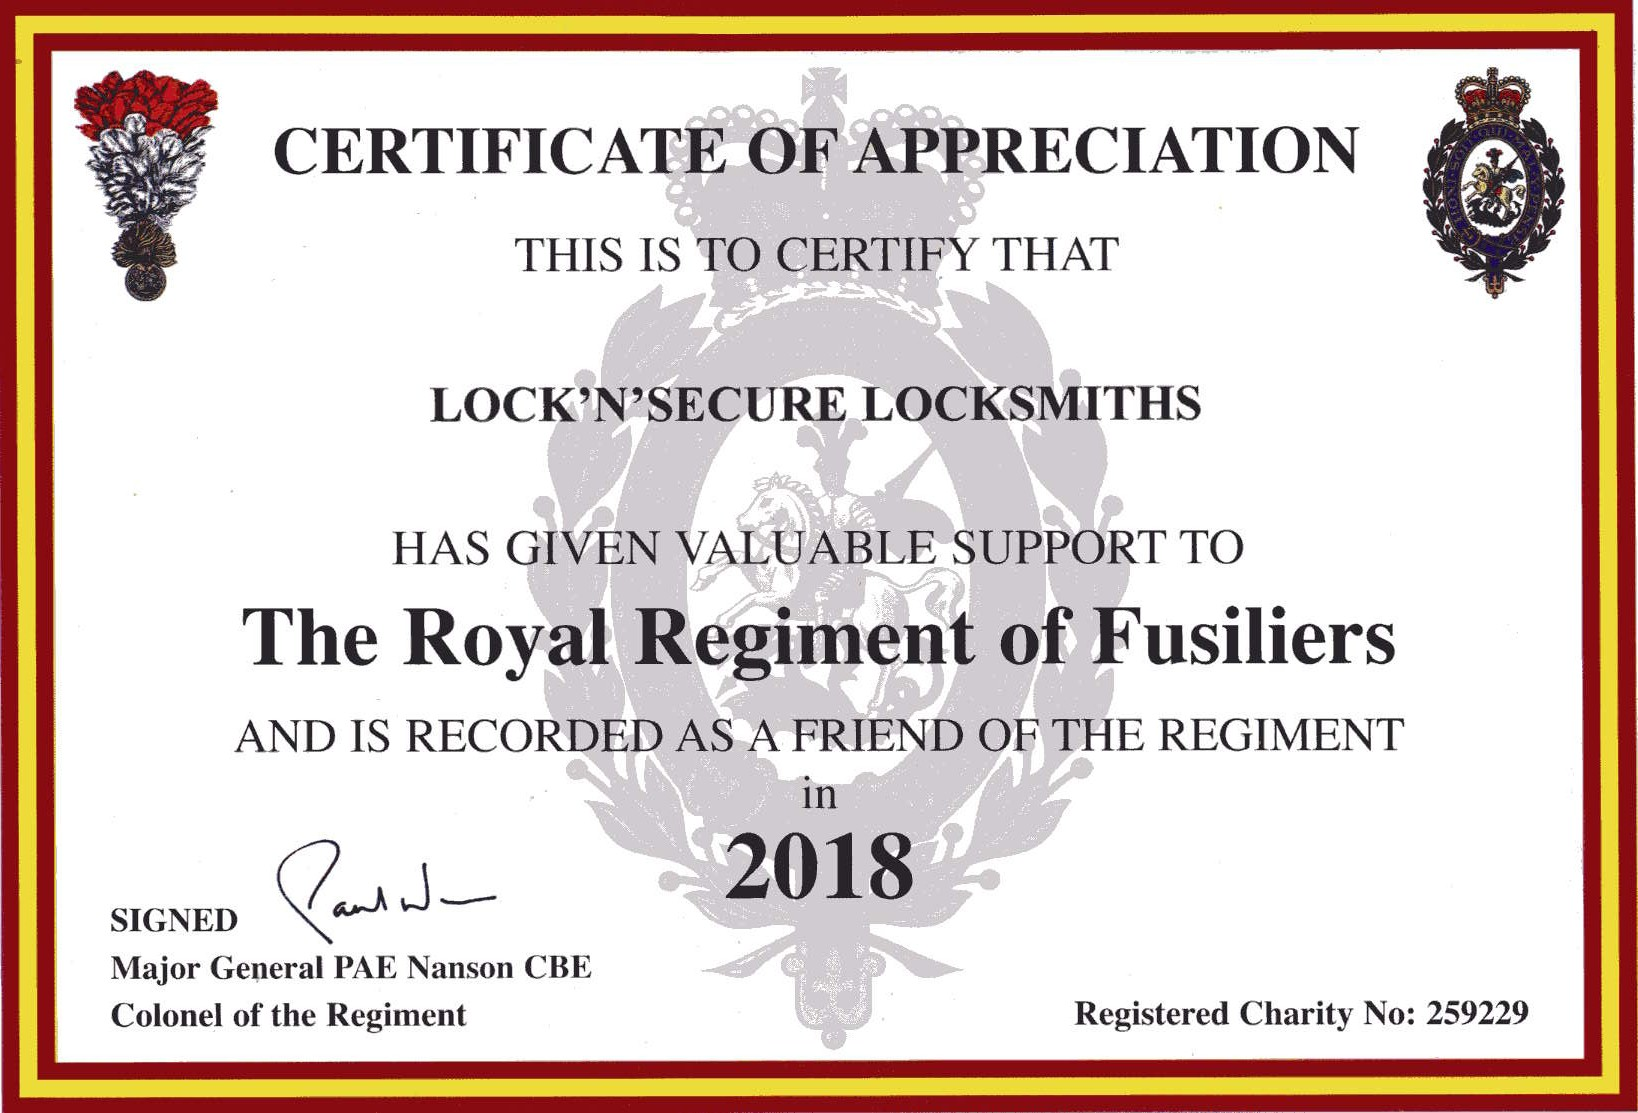 Lock'n'Secure friend of Royal Regiment of Fusiliers